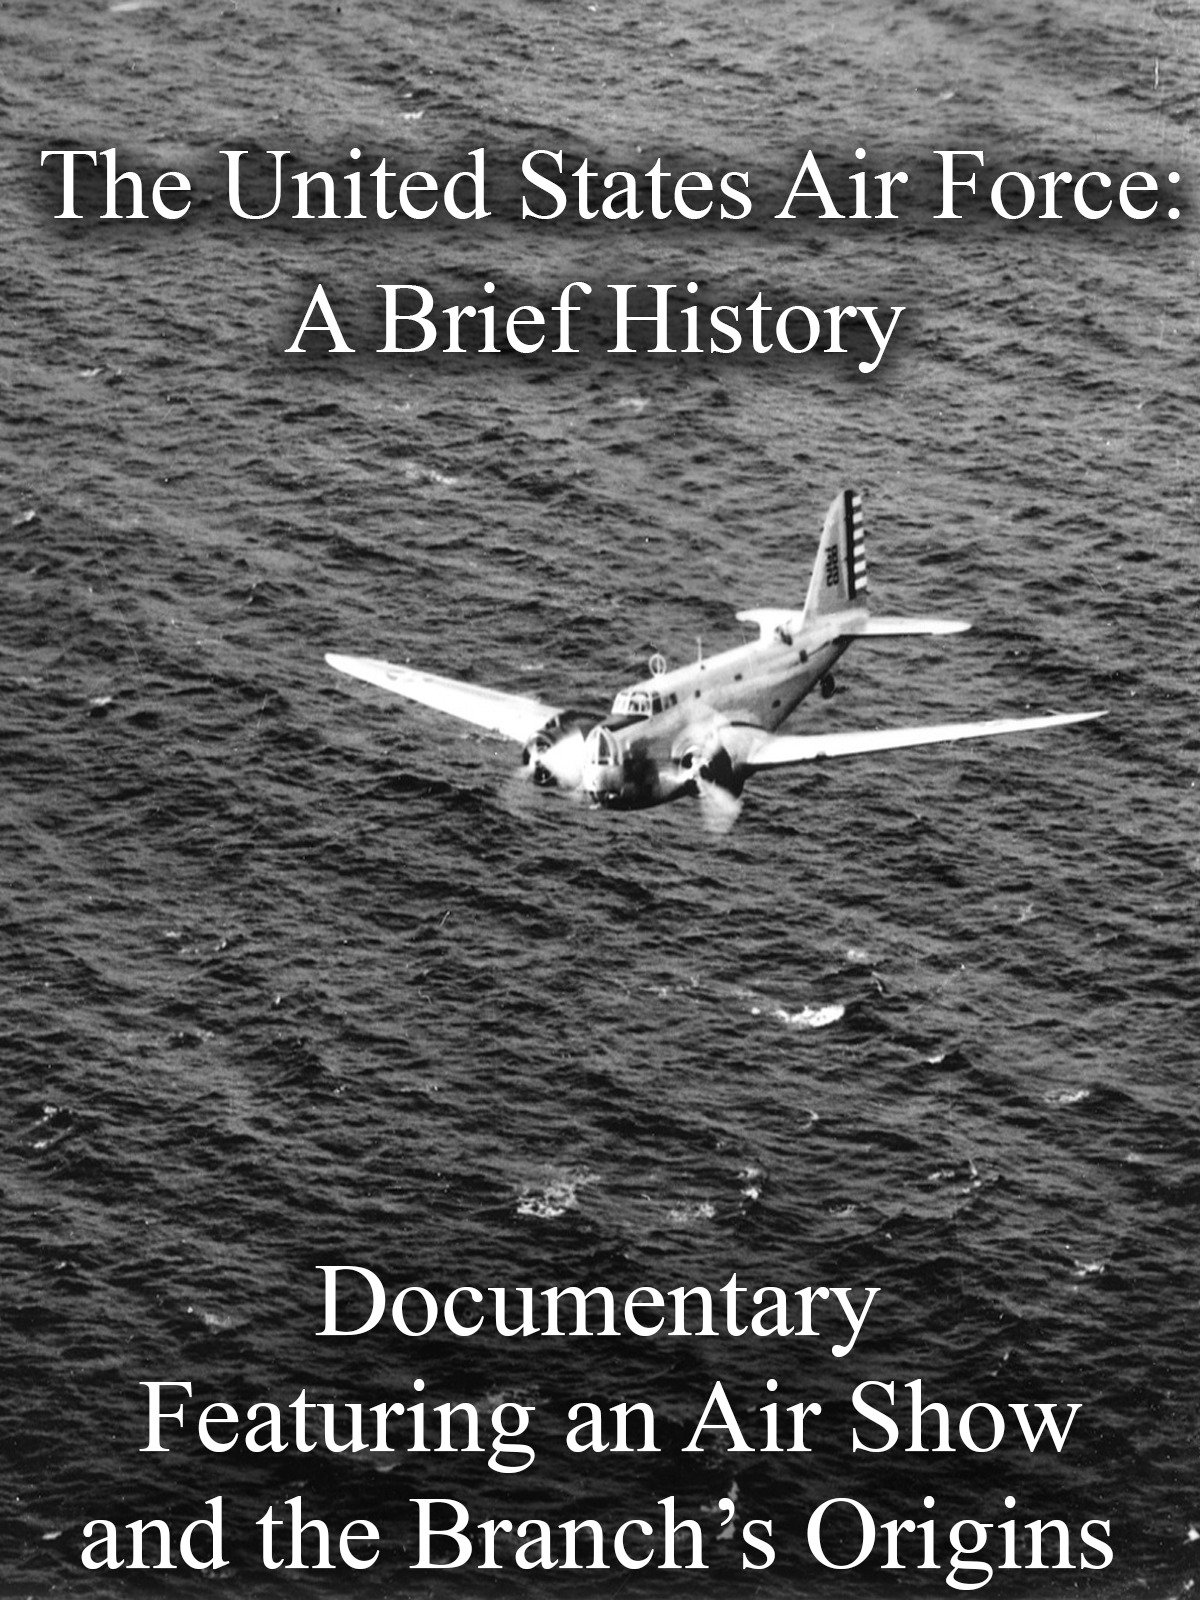 Clip: The United States Air Force: A Brief History Documentary Featuring an Air Show and the Branch's Origins on Amazon Prime Video UK